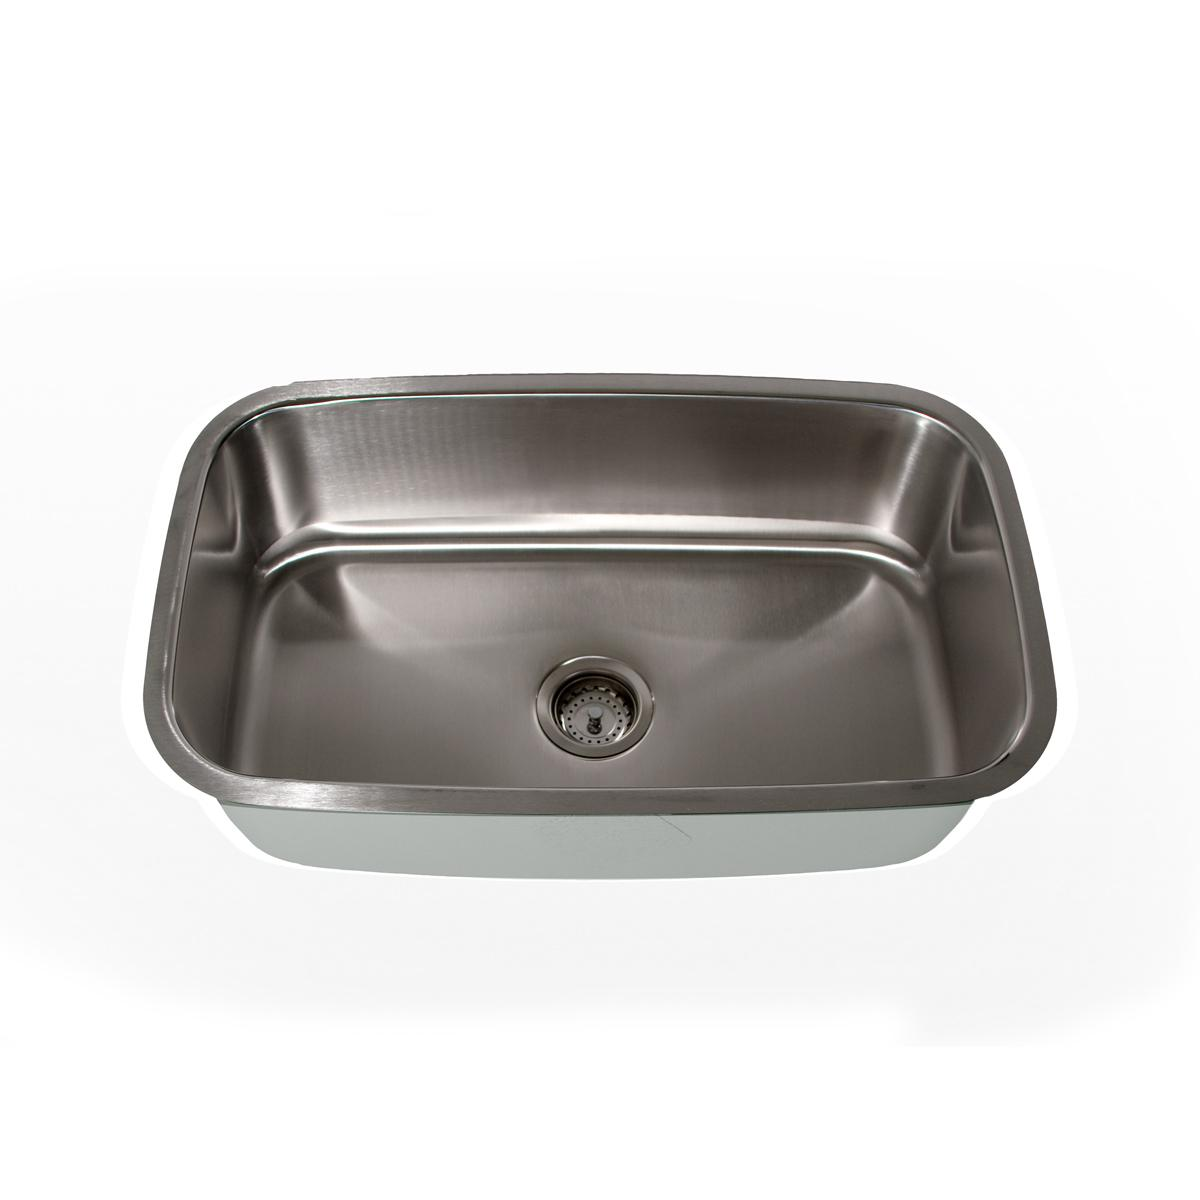 Highpoint Collection Stainless Steel Large Rectangle Single Bowl Kitchen Sink